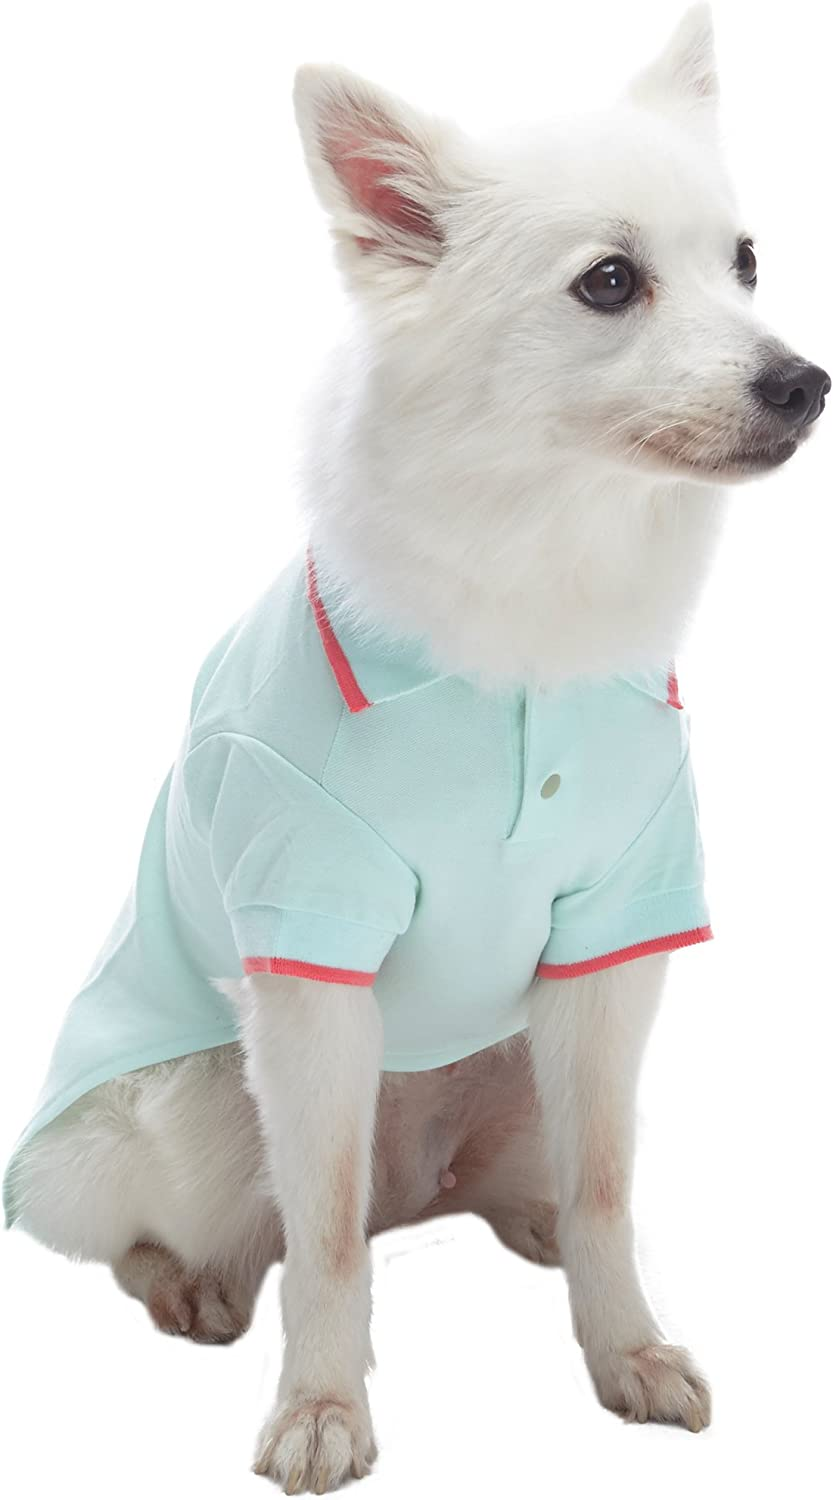 Pack of 2 Clothes for Dogs Blueberry Pet Back to Basic Cotton Blend Dog Polo Shirt in Pastel Pink and Blue Back Length 10//25cm